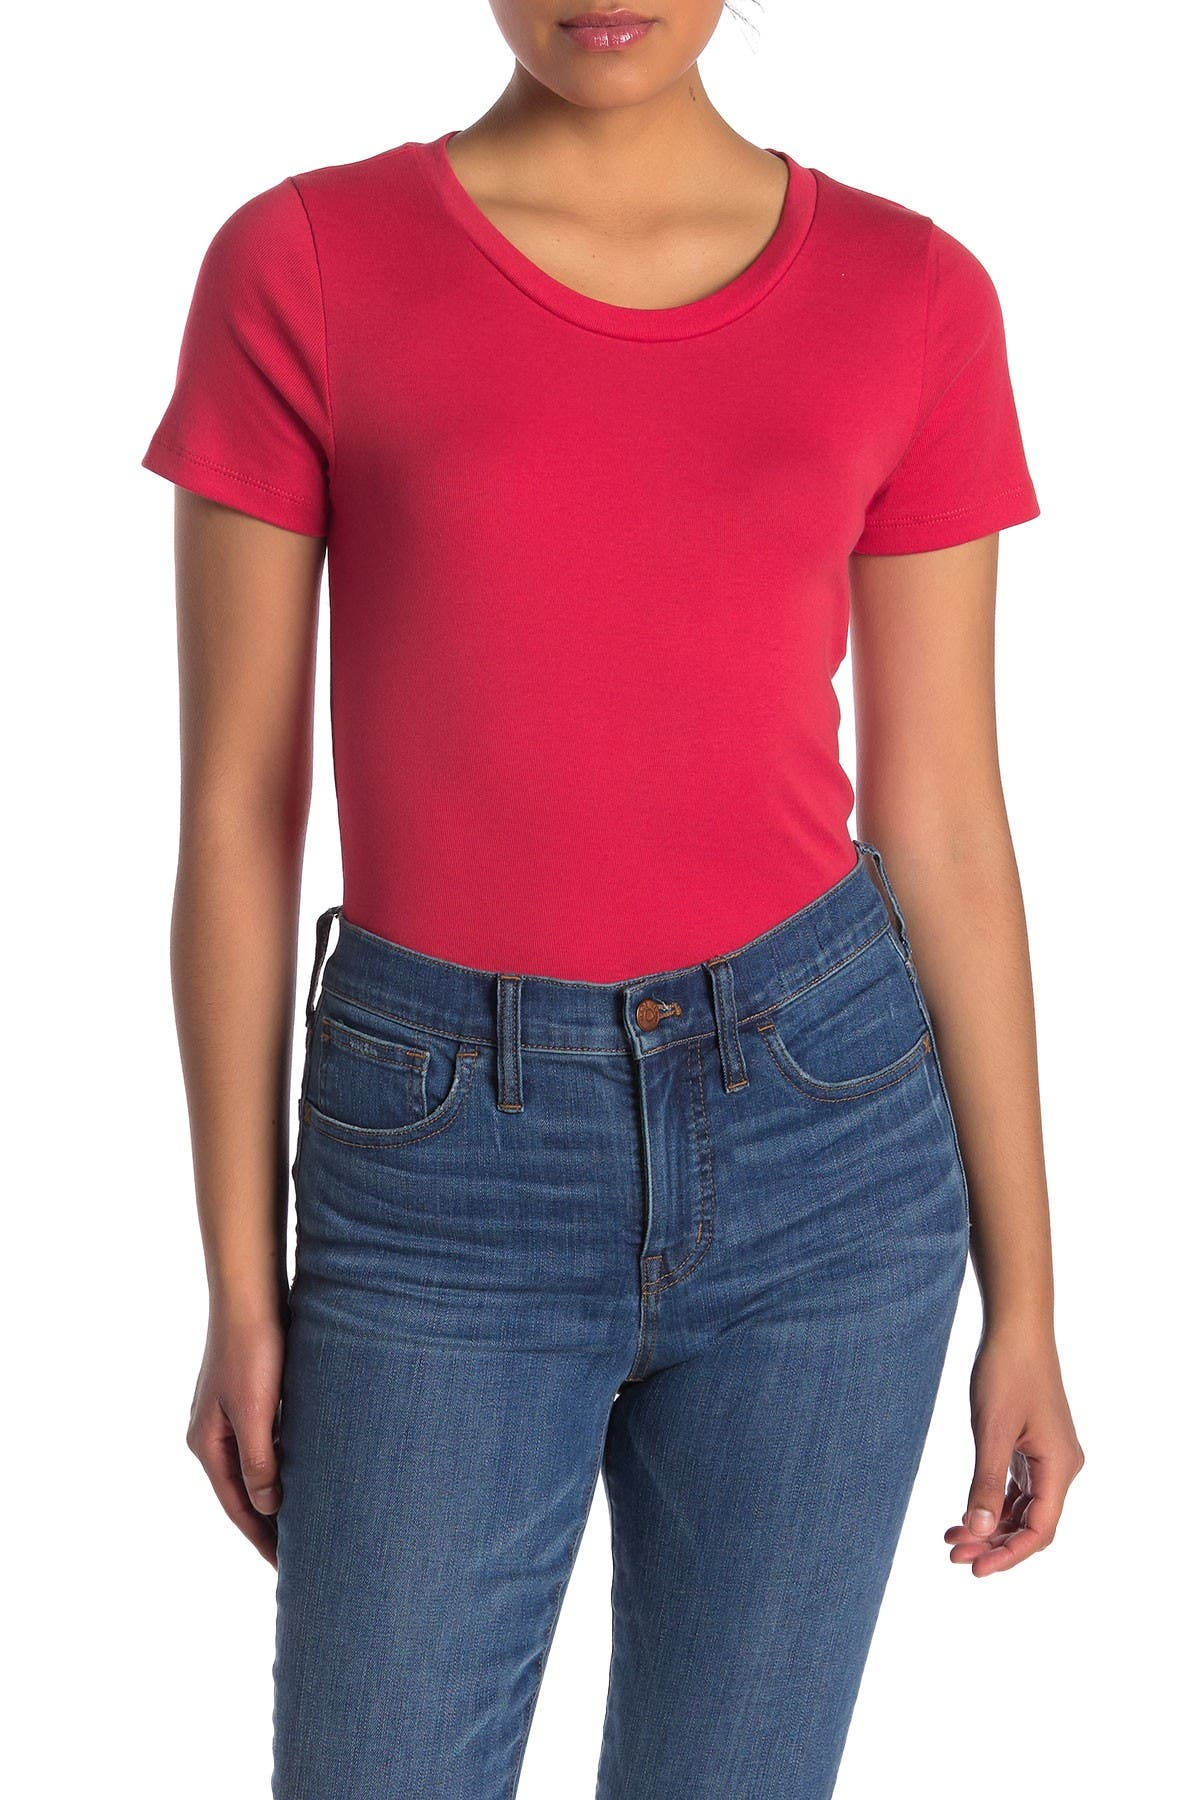 Image of J. Crew Perfect Fit Short Sleeve T-Shirt